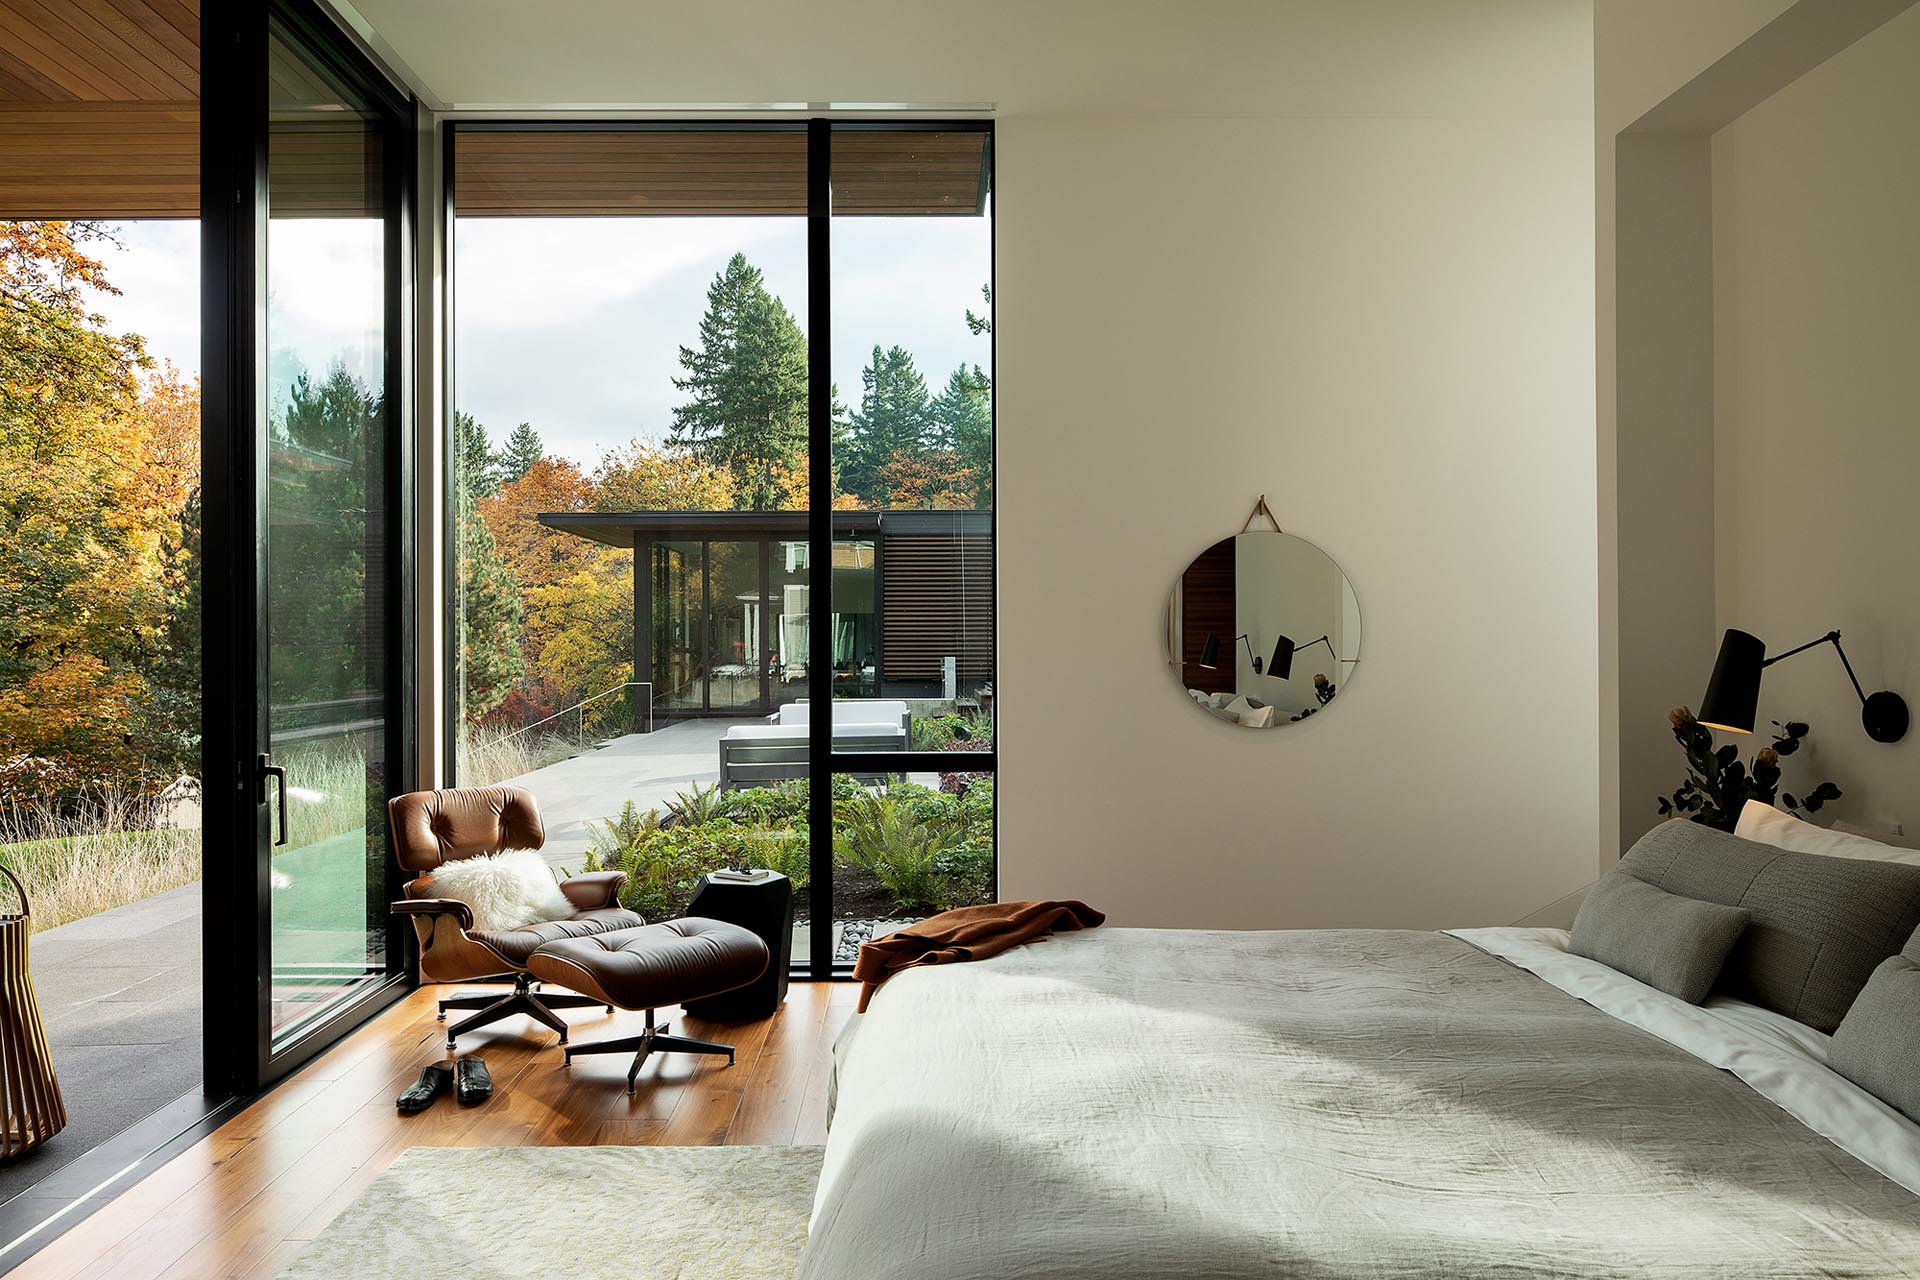 A modern bedroom with large windows and a door that opens to a terrace.